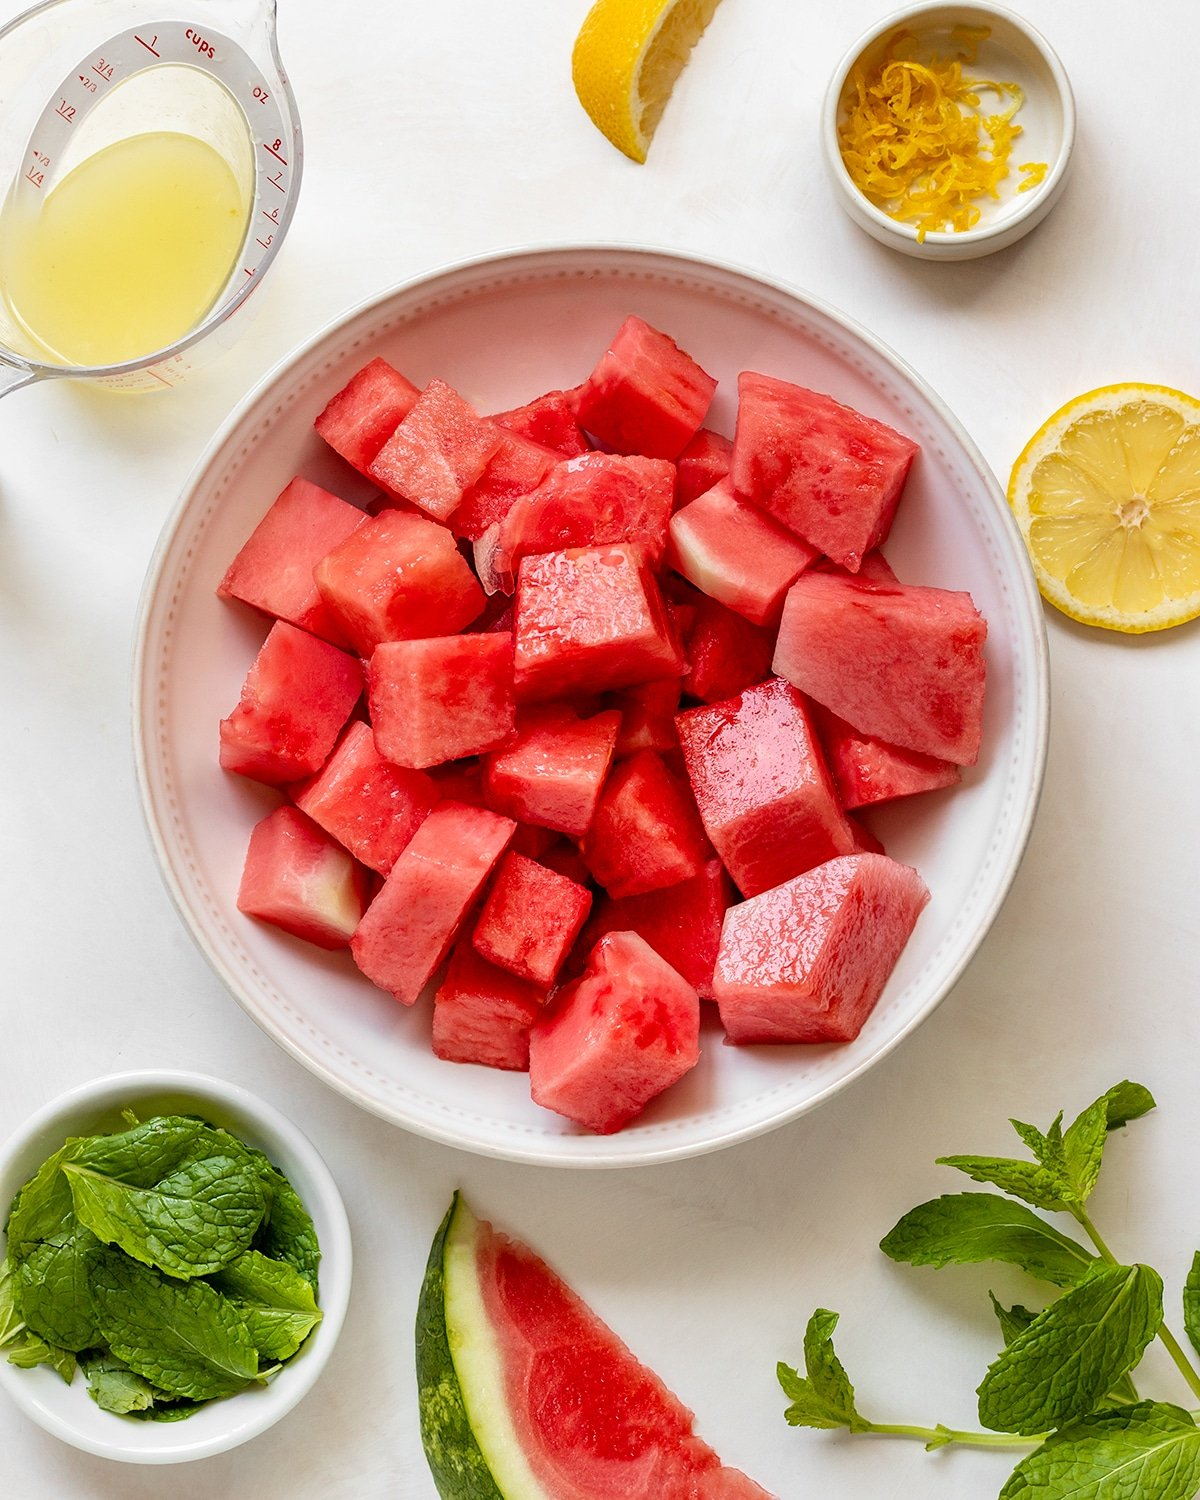 watermelon popsicle ingredients including bowl of seedless watermelon, lemon juice, lemon zest, and fresh mint leaves